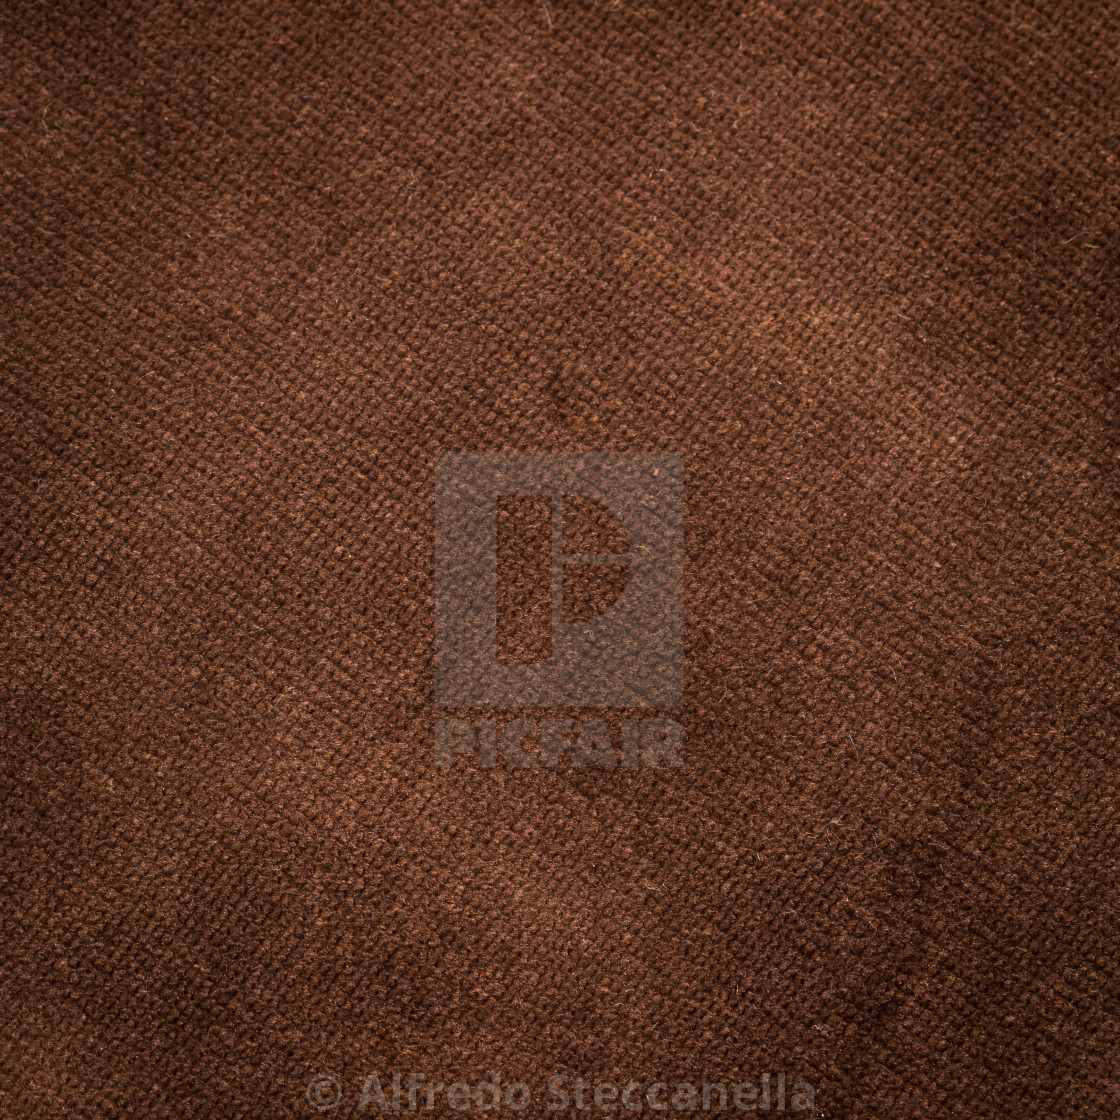 Velvet Fabric Texture License Download Or Print For 6 20 Photos Picfair